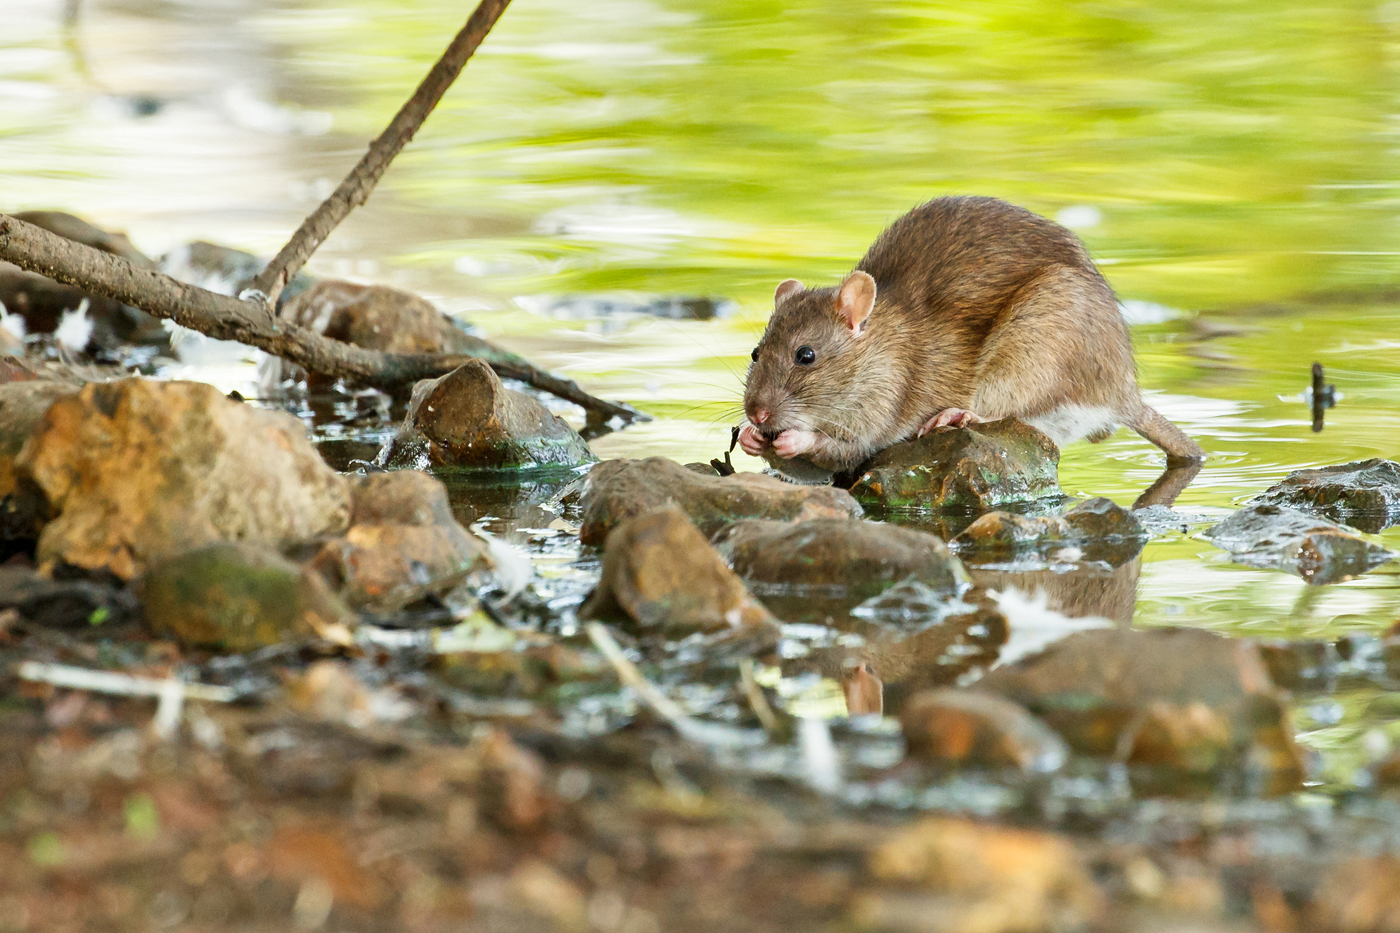 Rat at Falmer Pond, East Sussex